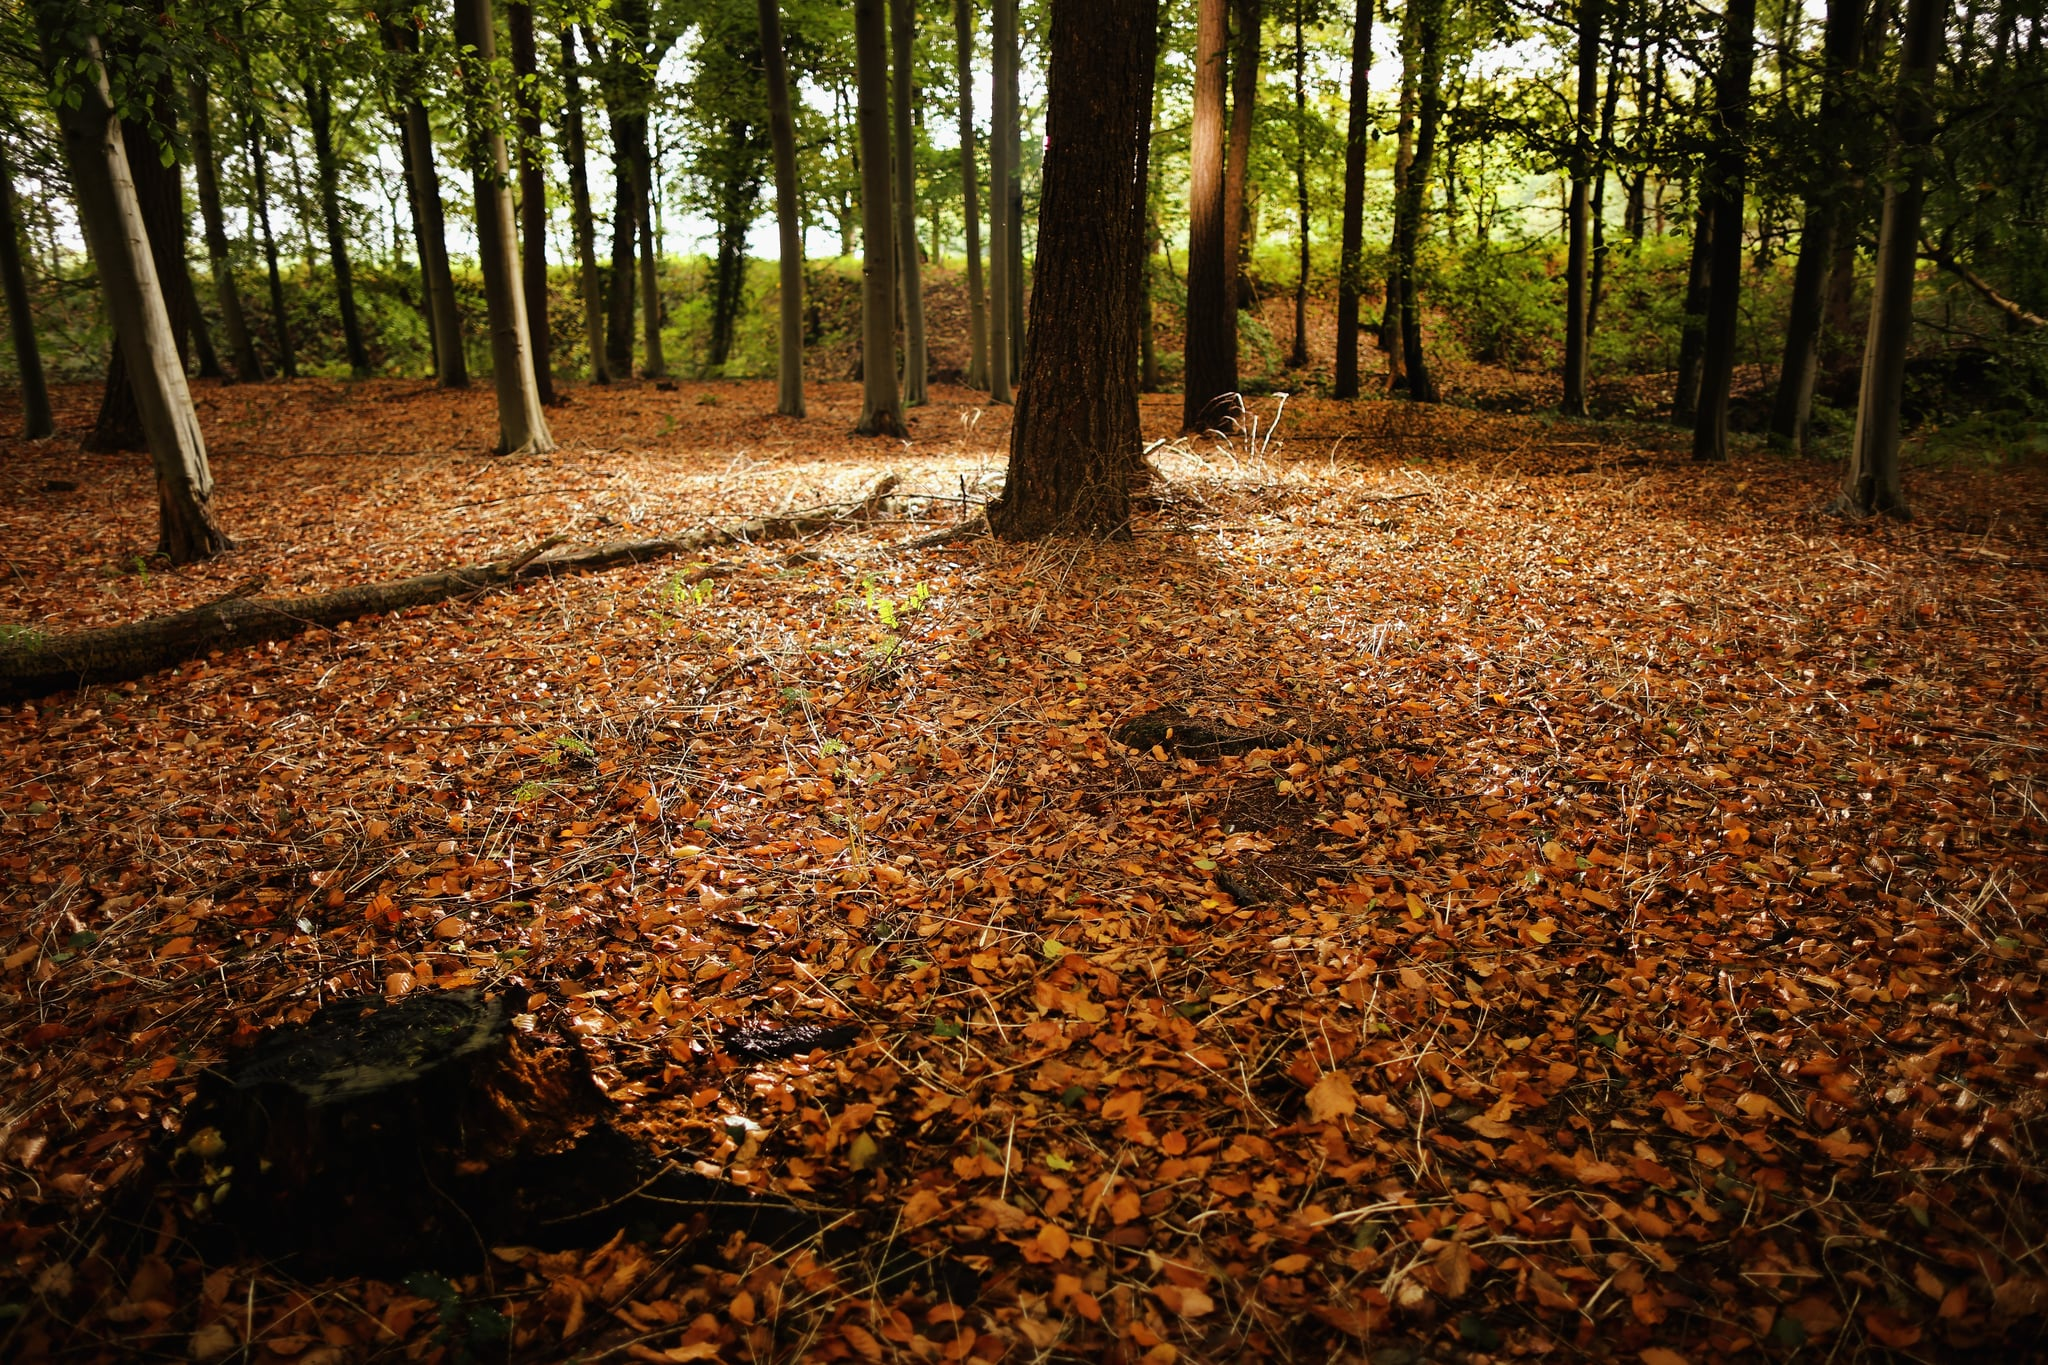 Autumn Leaves Covered The Forest Floor In The Cheshire Countryside